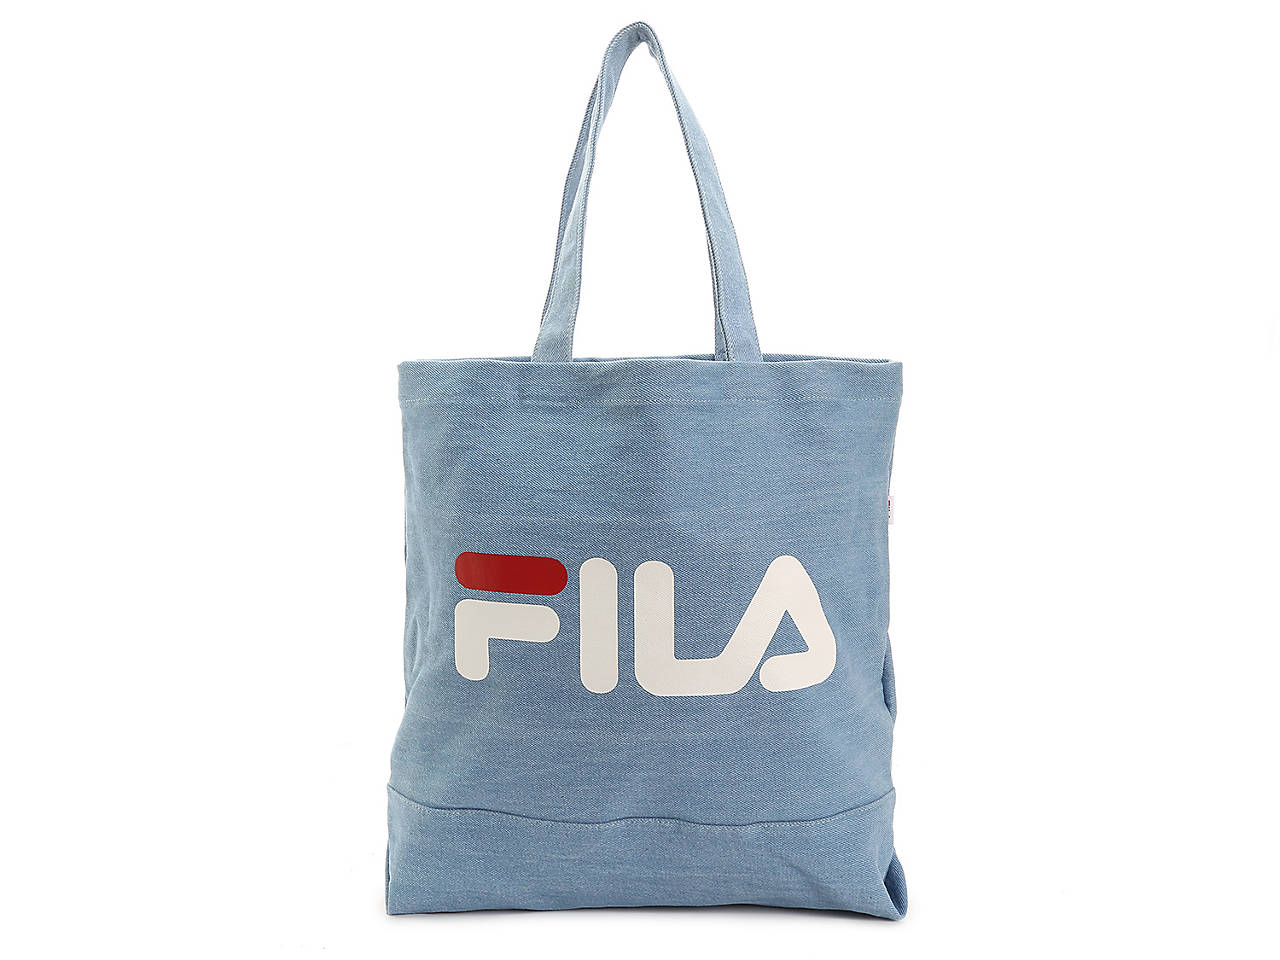 487a798488 Fila Canvas Tote Women s Handbags   Accessories